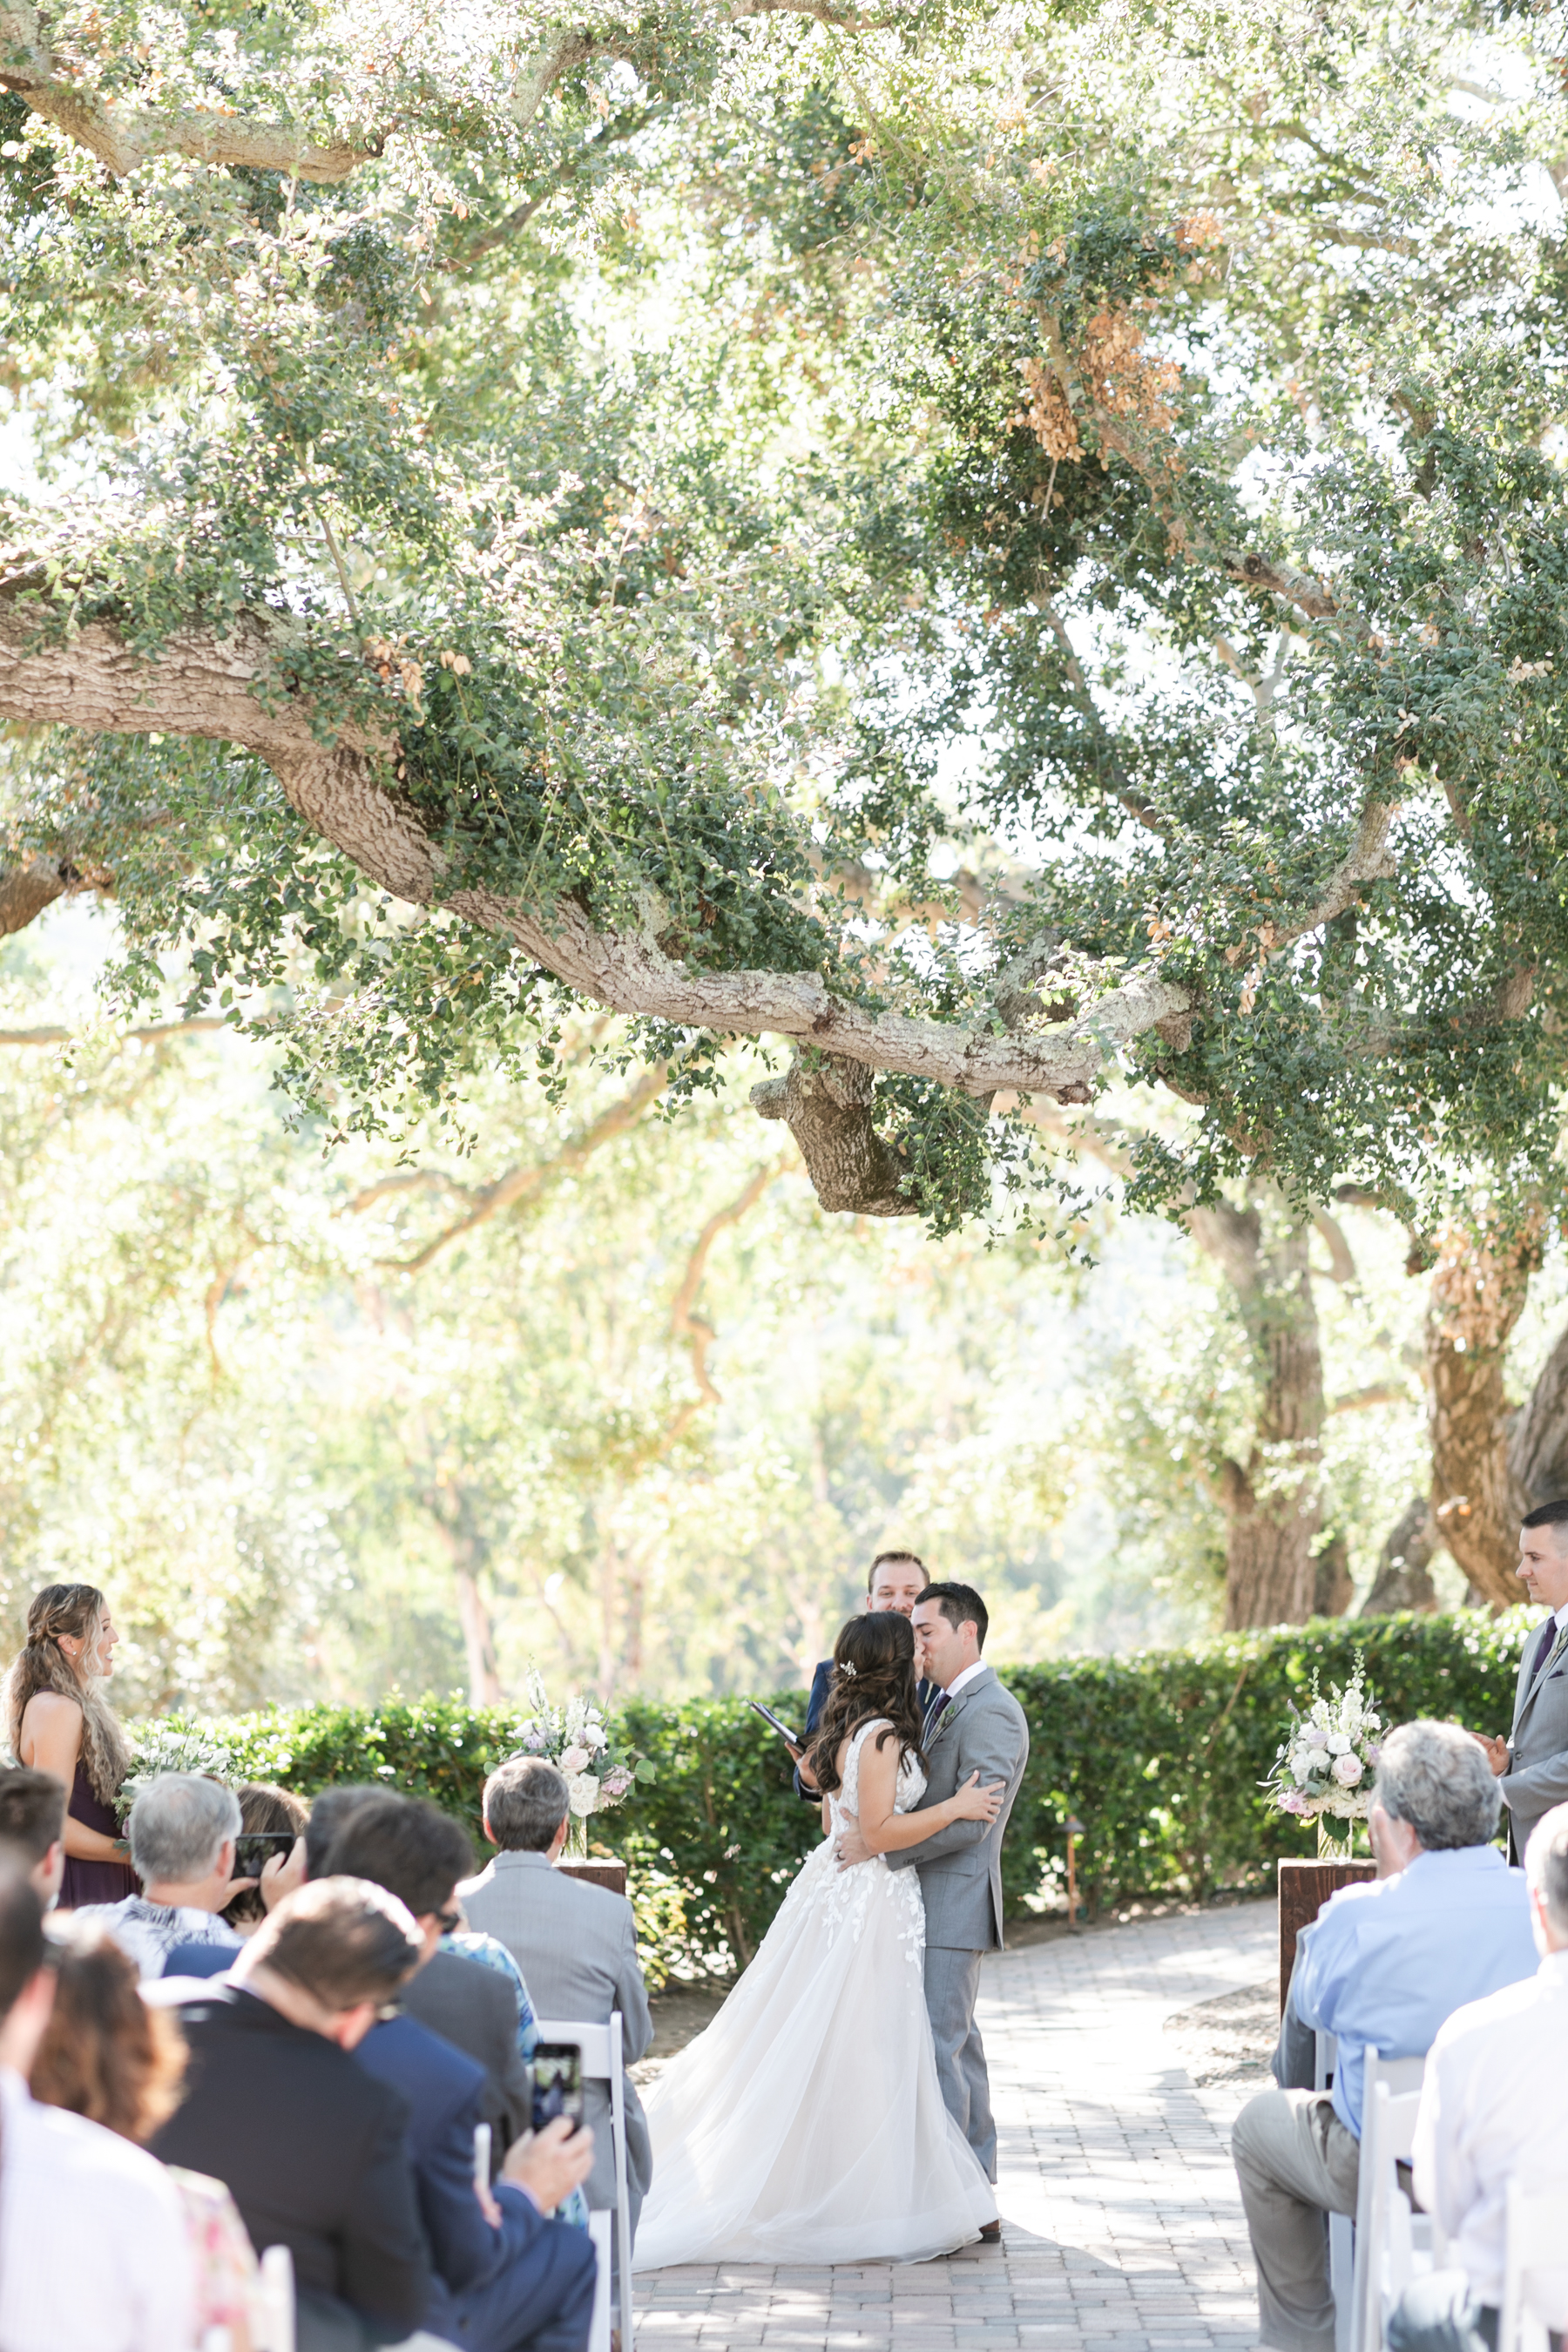 Jordan and Alex's Mt. Woodson Ramona Wedding Great Woodland Photography 8-31-19-19.jpg